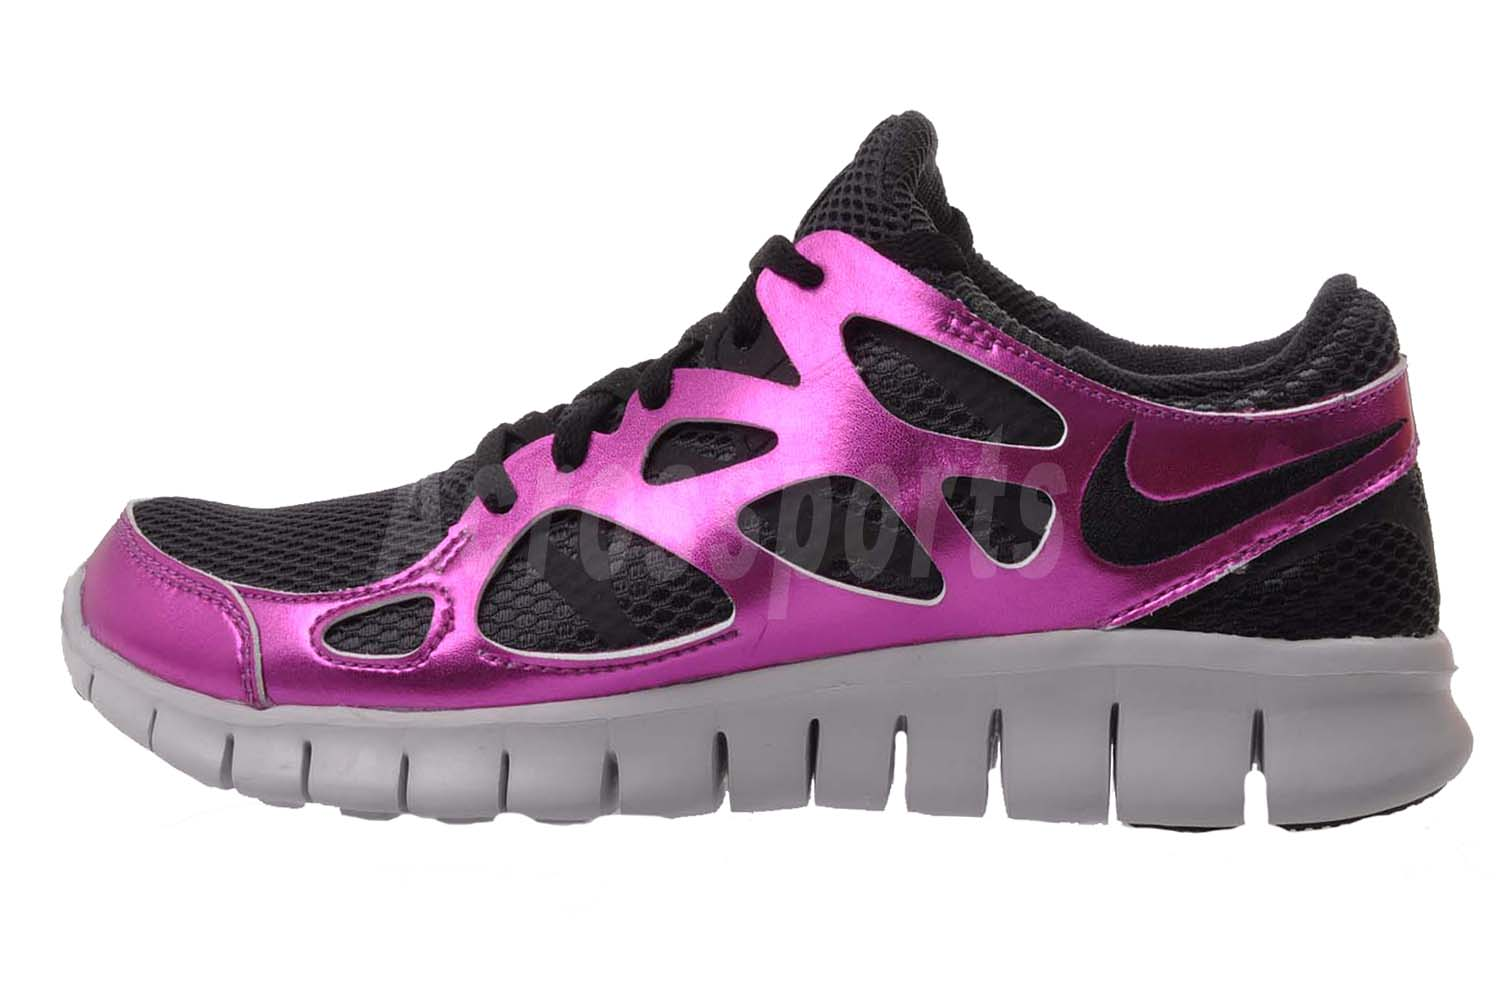 finest selection 640ac d86ed ... Nike Free Run 2 Ext Sneaker Pink ...